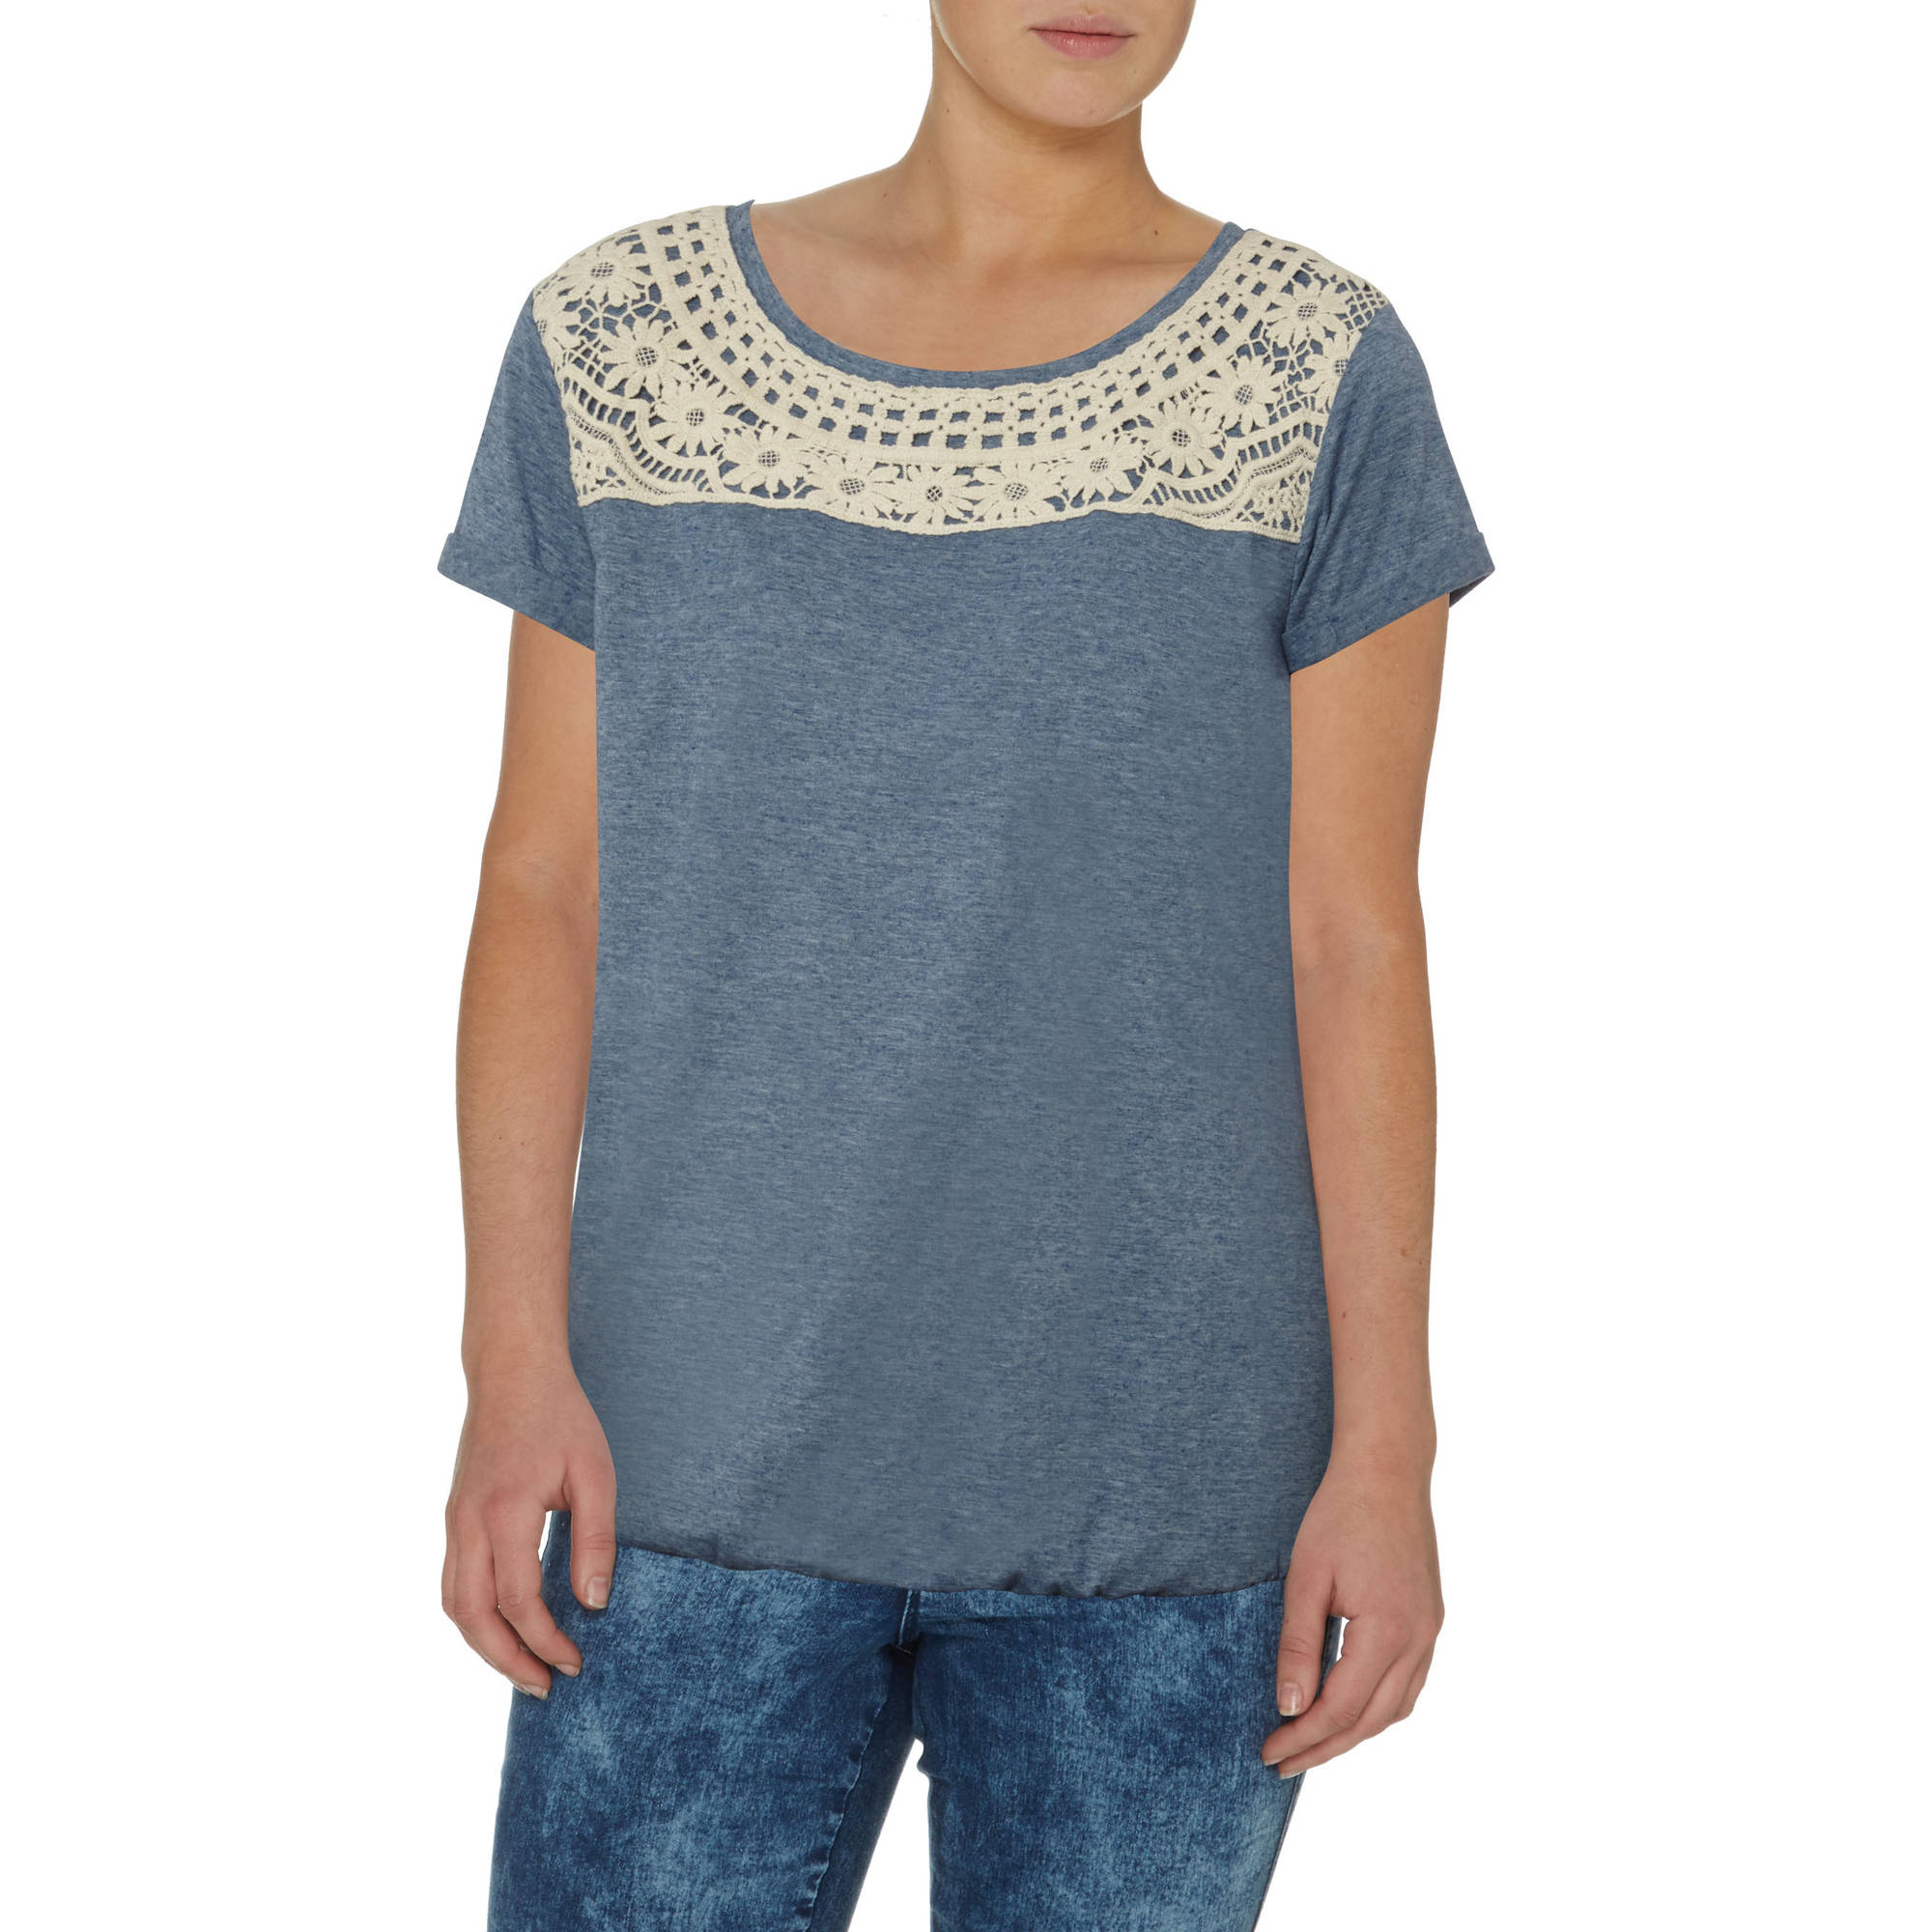 George UK Women's Crochet-Trim Blouse T-Shirt